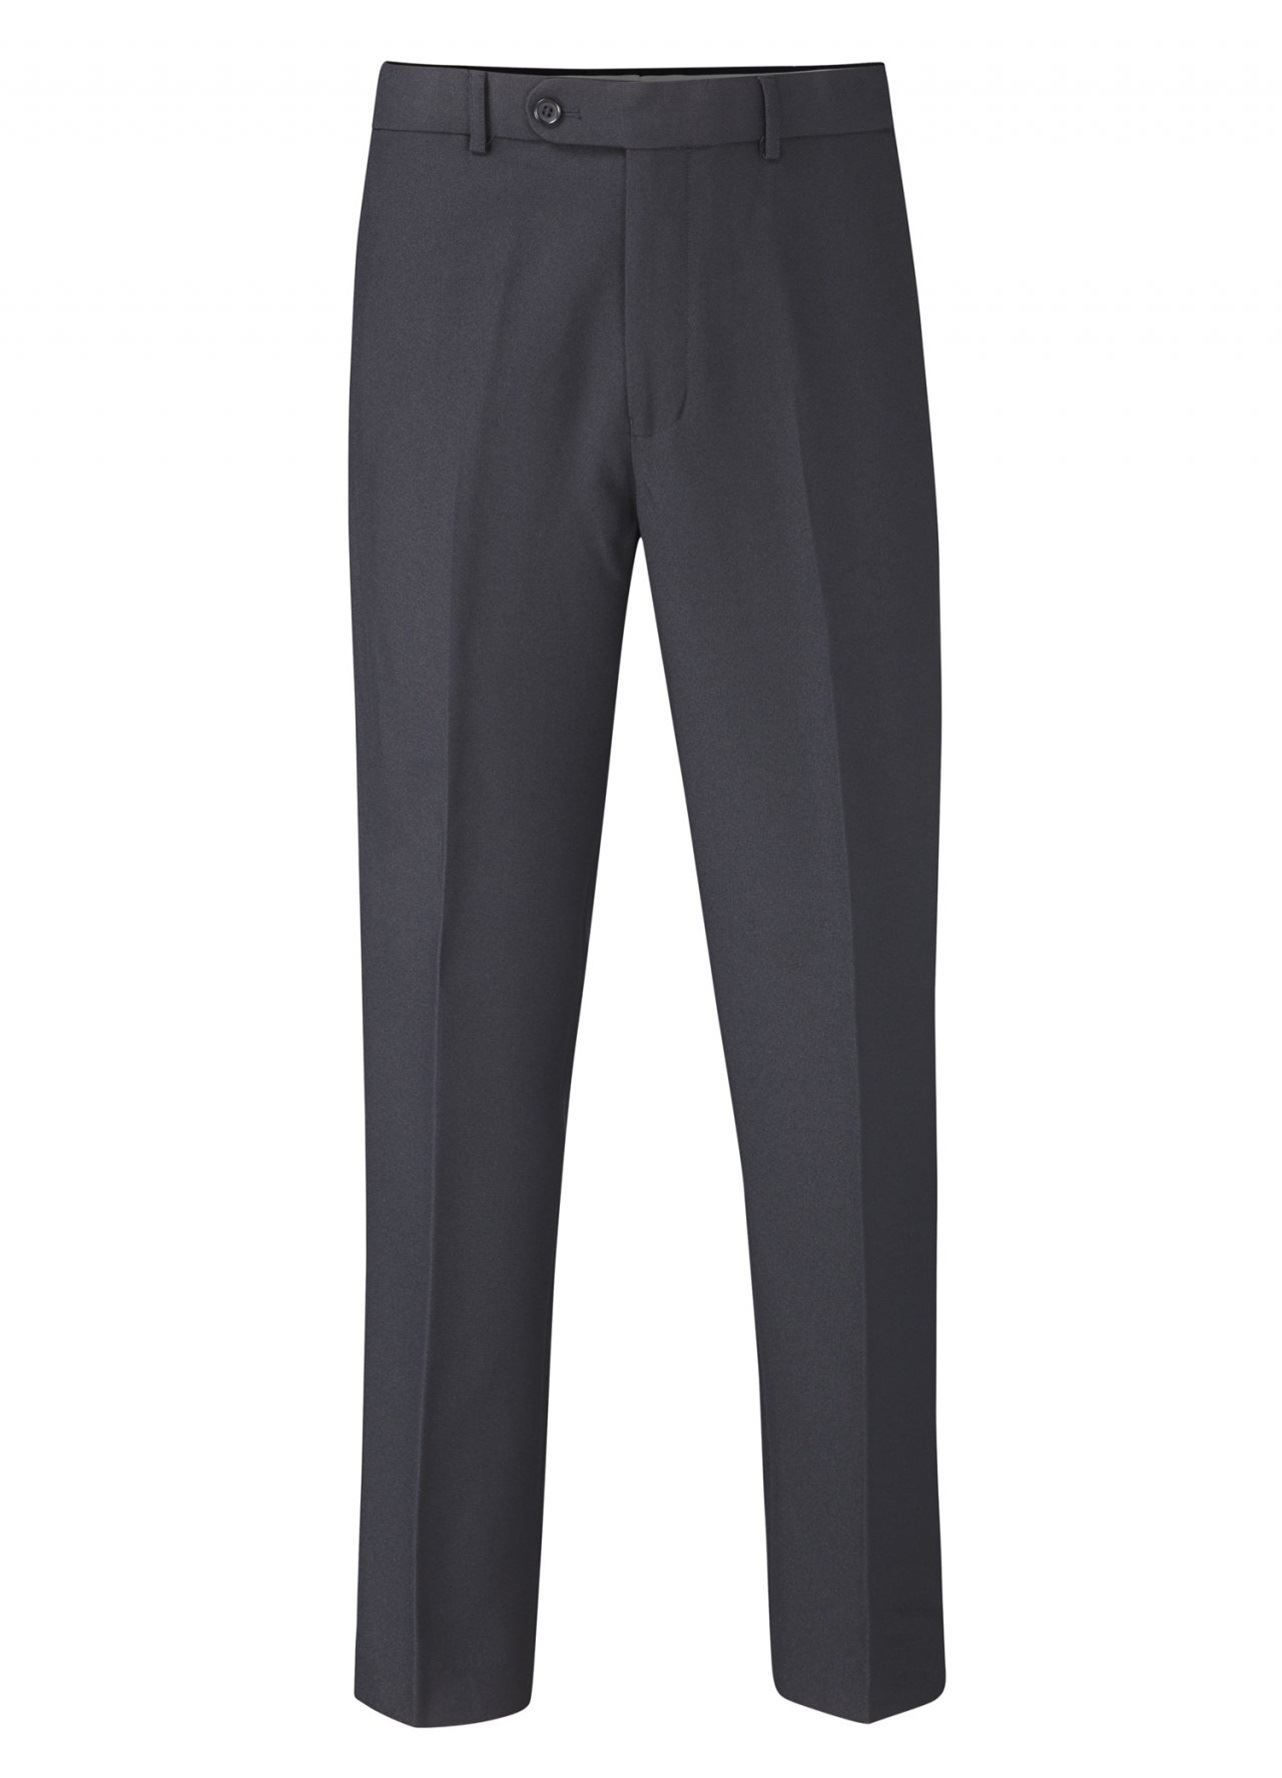 """SKOPES Flexi Waist Flat Front Easy Care Trousers in Navy,Waist 30-62/"""",XS// S//R//L"""